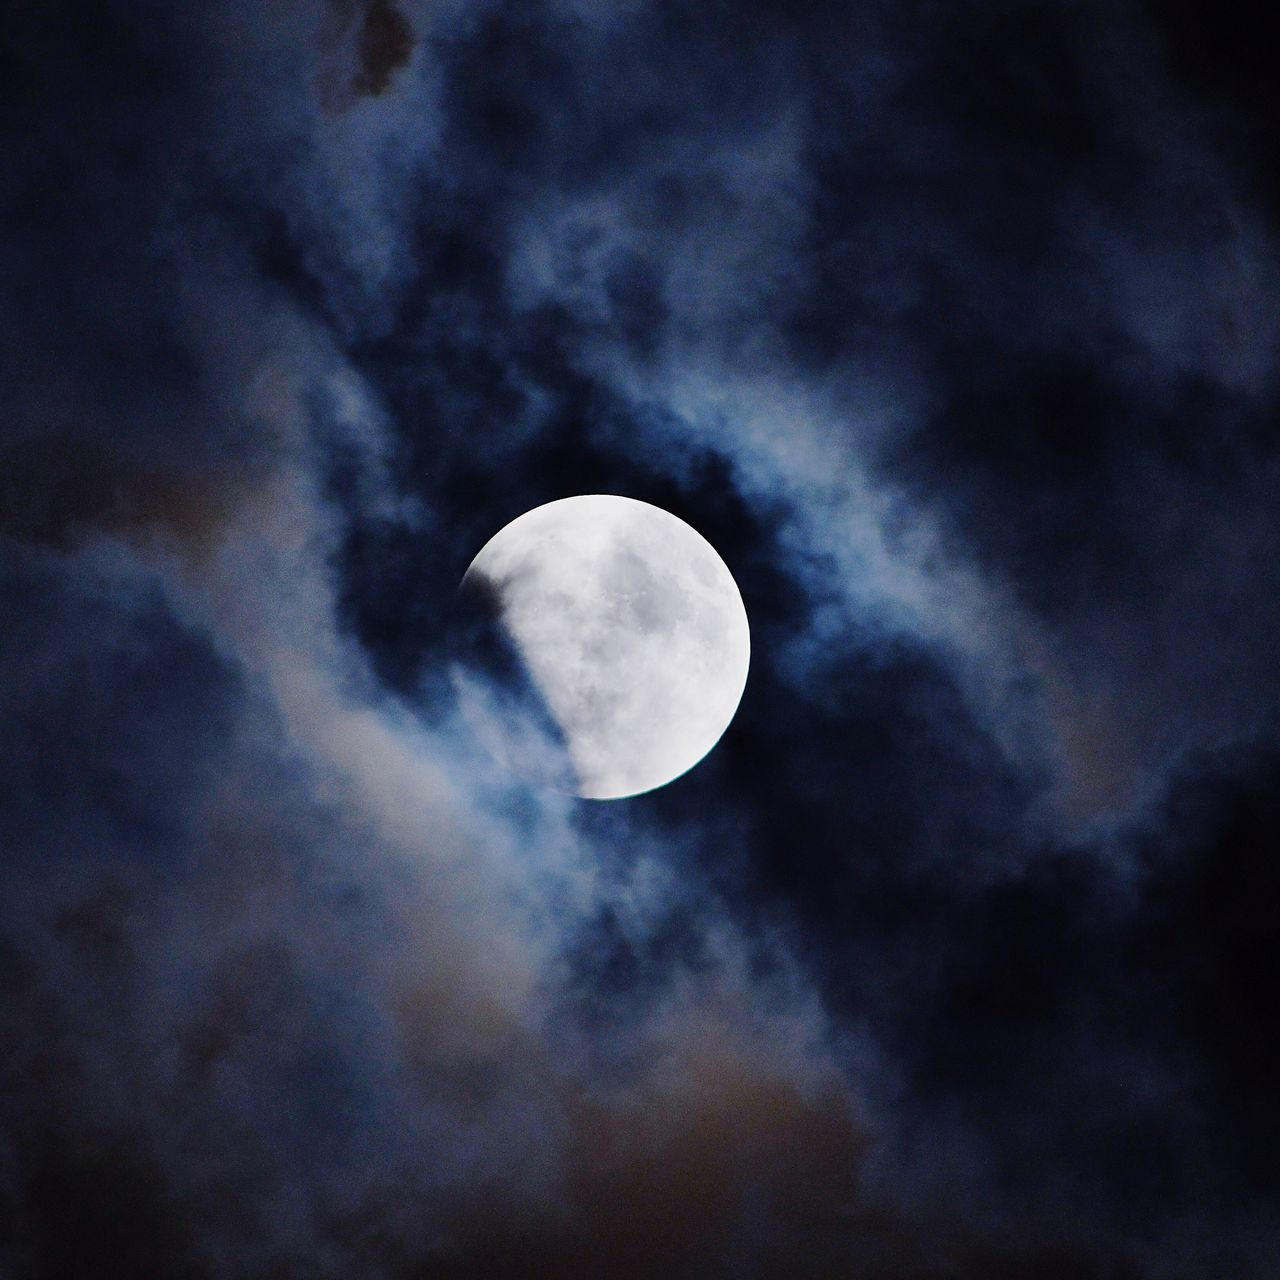 sky, cloud - sky, moon, space, astronomy, low angle view, beauty in nature, night, scenics - nature, no people, planetary moon, nature, space exploration, tranquility, discovery, tranquil scene, outdoors, half moon, exploration, crescent, space and astronomy, ominous